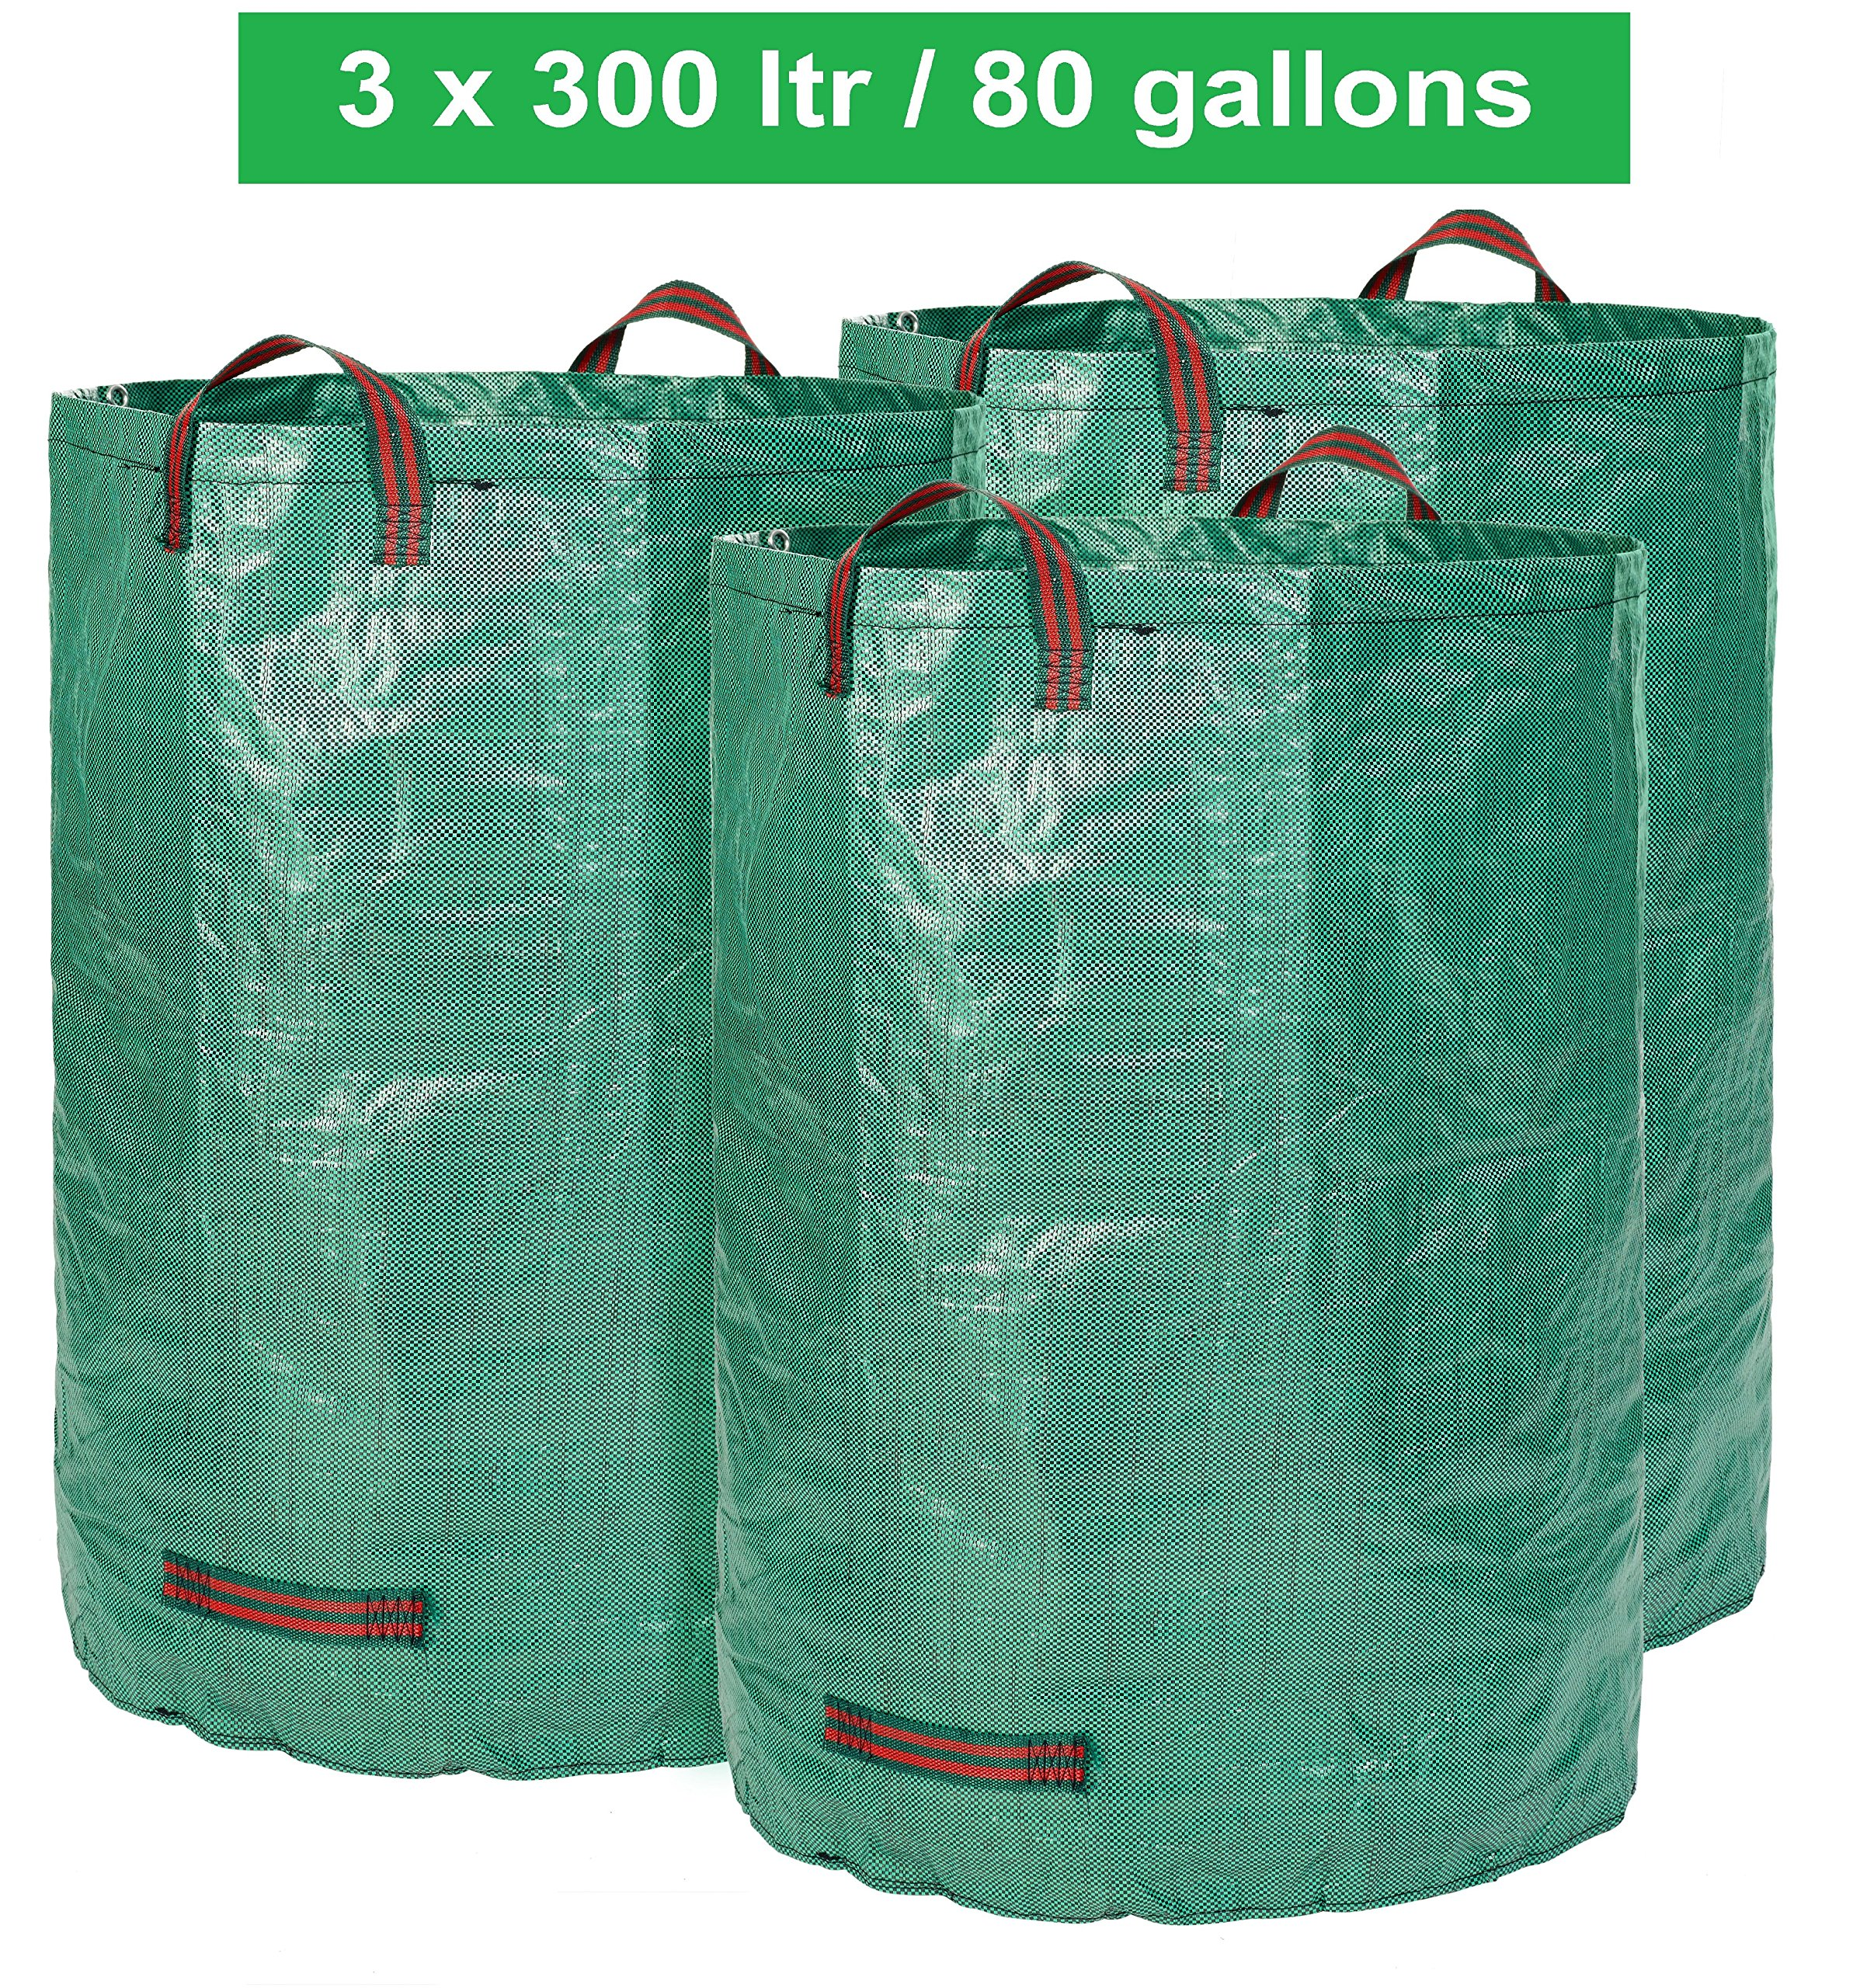 Glorytec 3 x 80 Gallons Leaf Bags - Extra Large Garden Bag - Comparative-Winner 2018 - Collapsible and Reusable Gardening Containers for Lawn and Yard Waste - 4 Handles